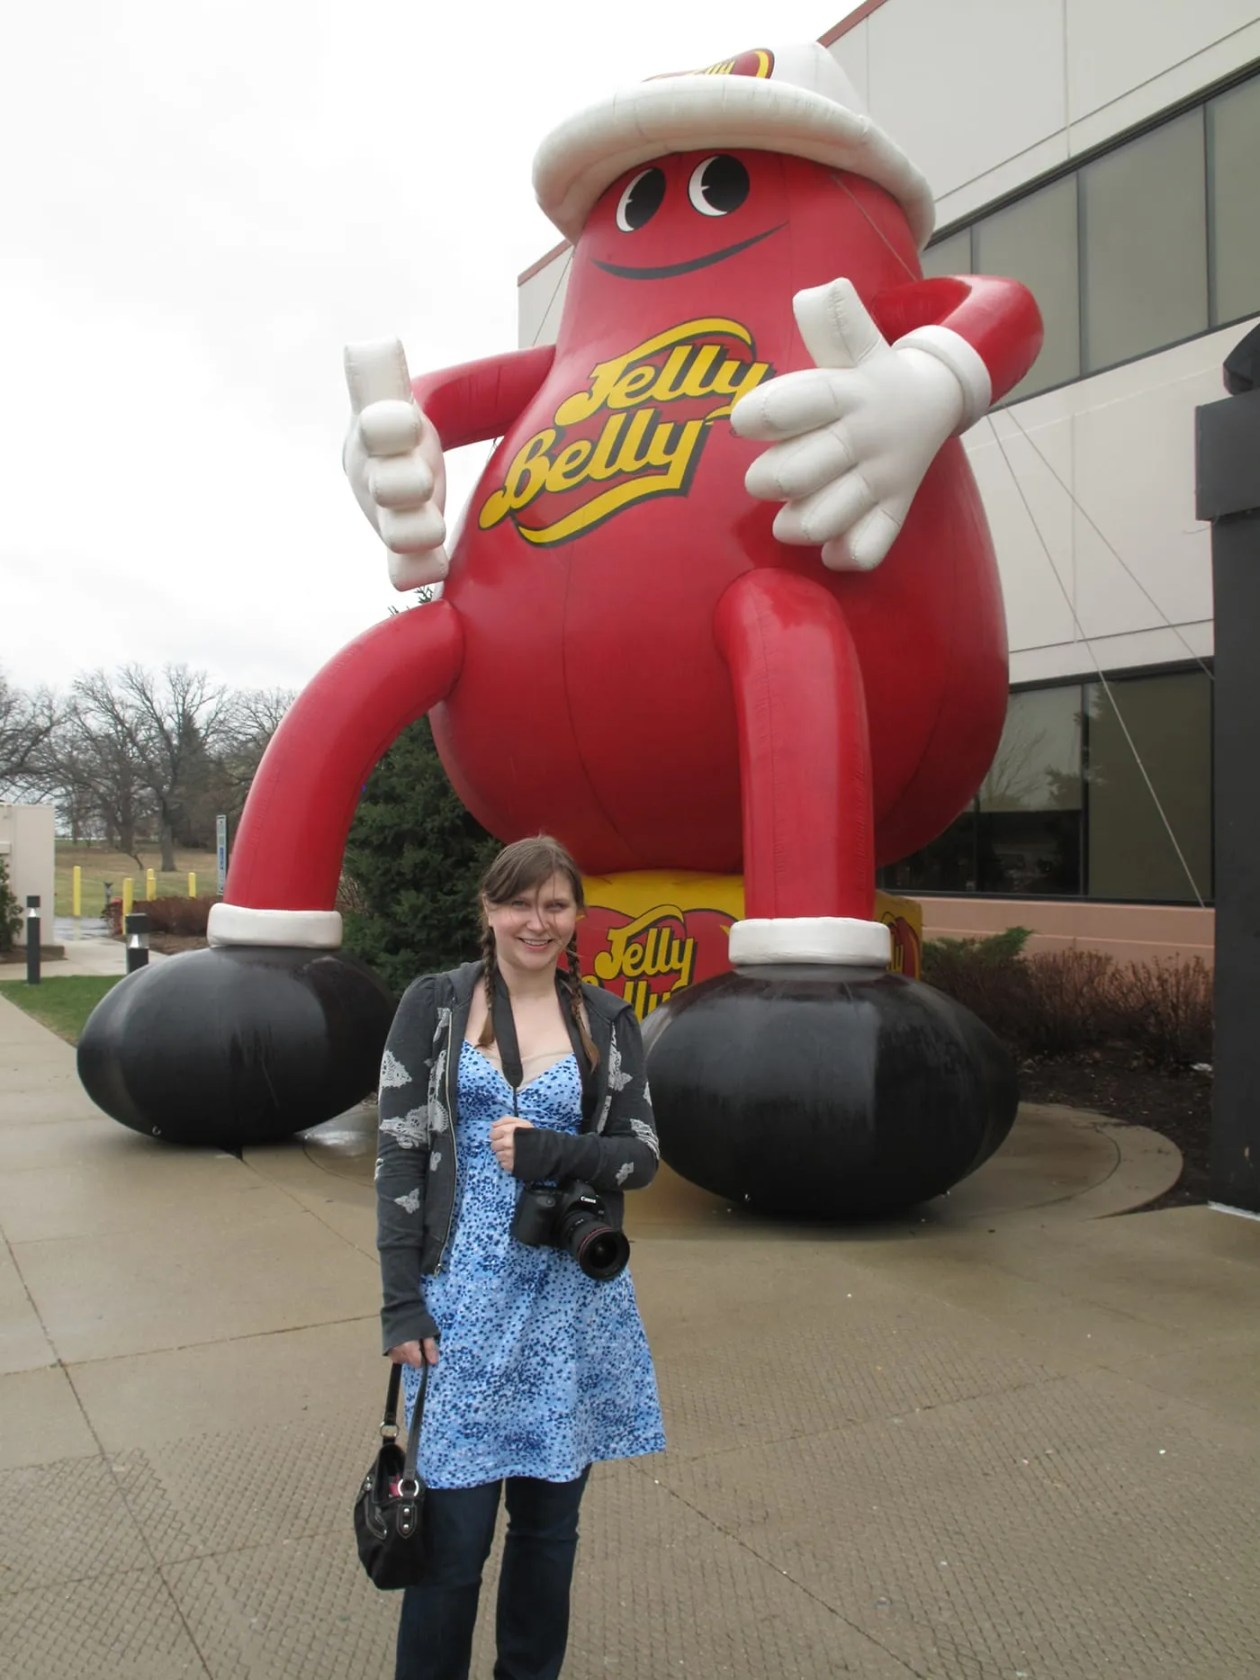 Val and the giant inflatable Jelly Belly at the Jelly Belly Tour in Pleasant Prairie, Wisconsin